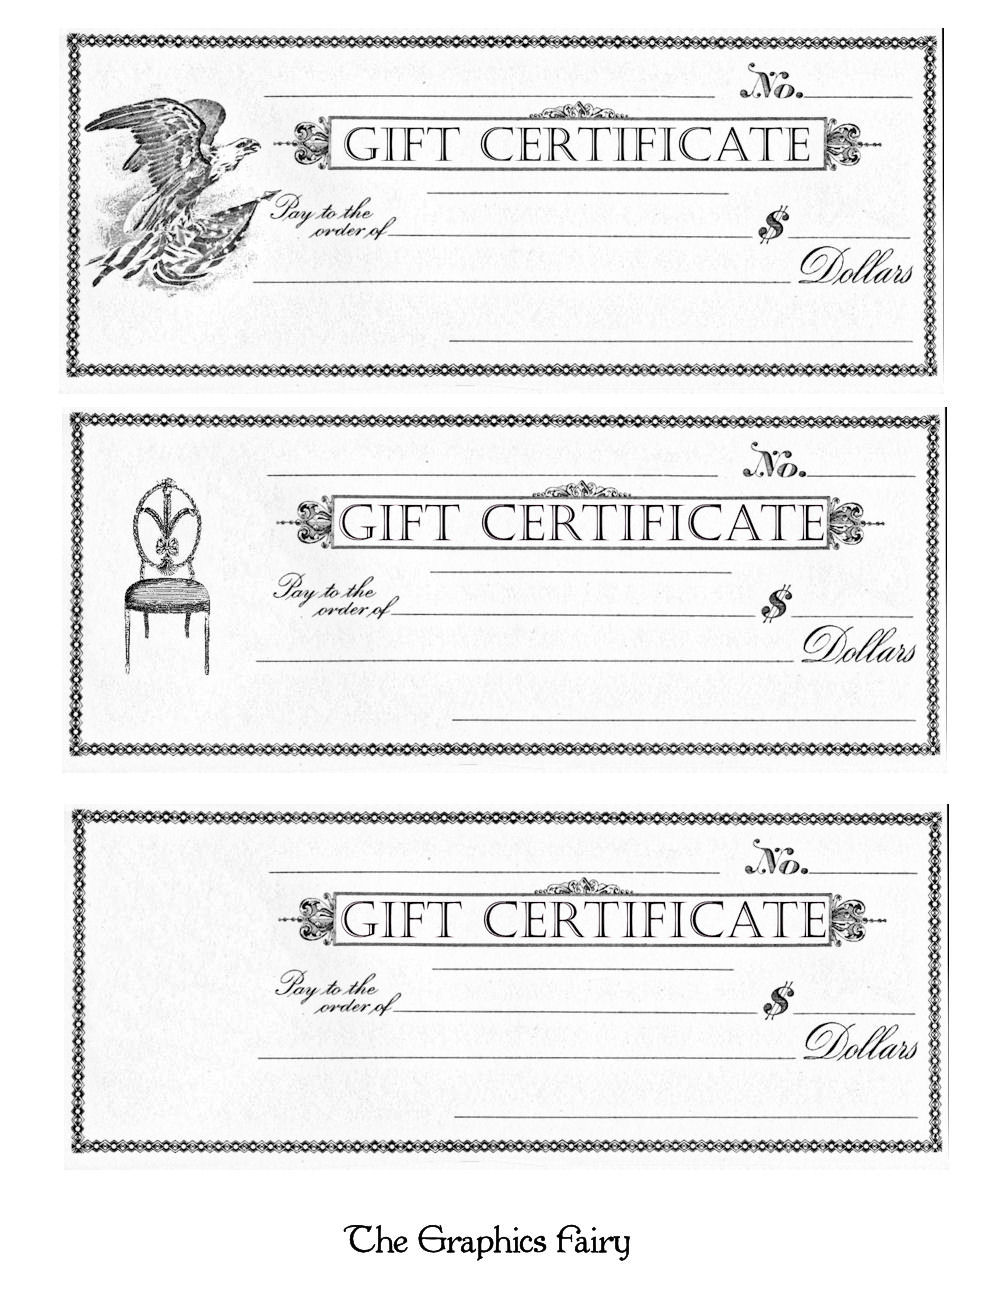 Free printable gift certificates the graphics fairy for Holiday gift certificate template free printable